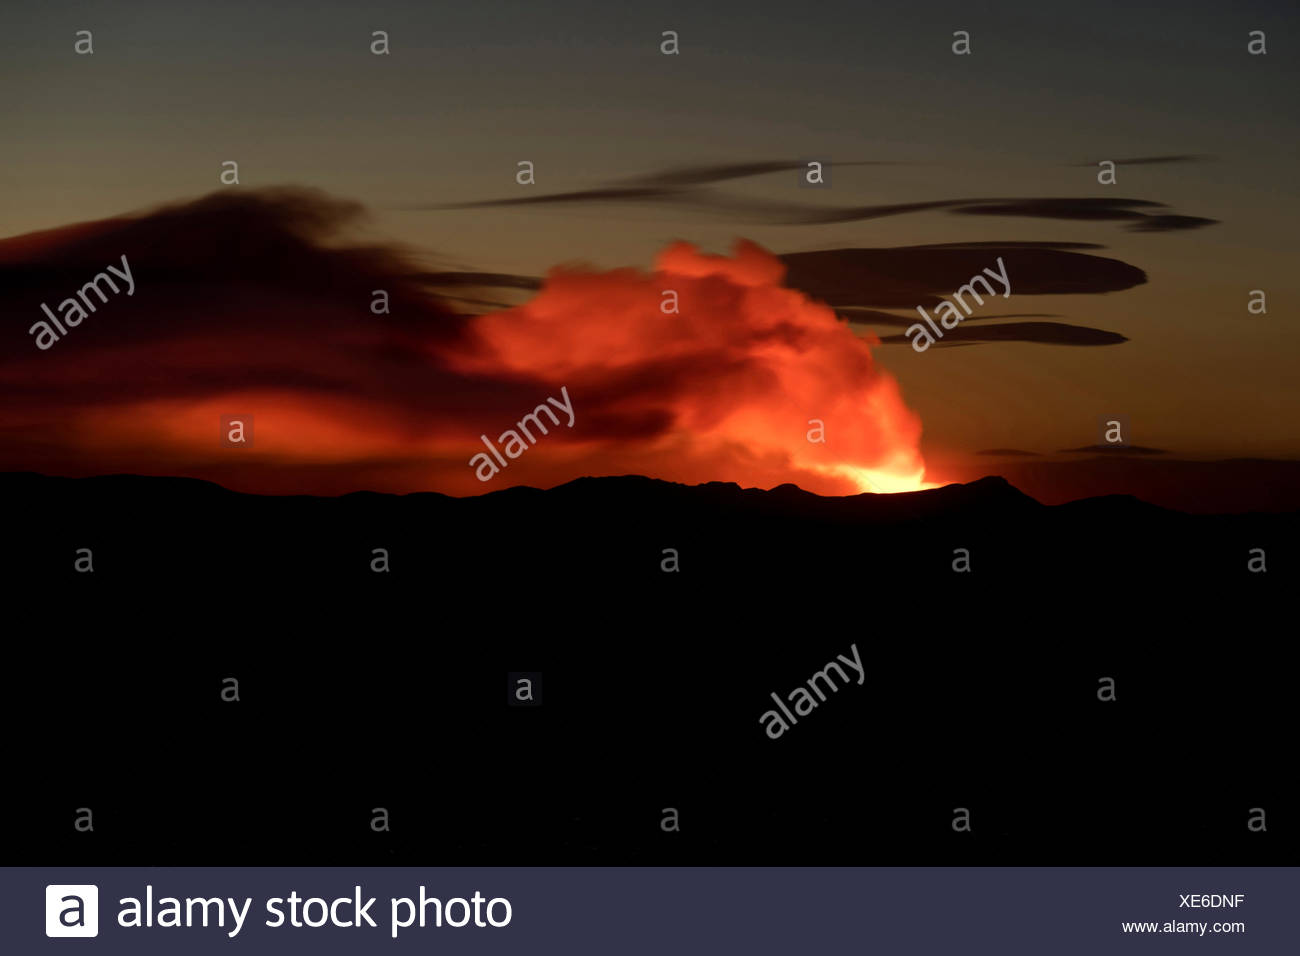 Ash and gas cloud of the Holuhraun fissure eruption, near the volcano Bárðarbunga, highlands, Northeast Iceland, Iceland - Stock Image